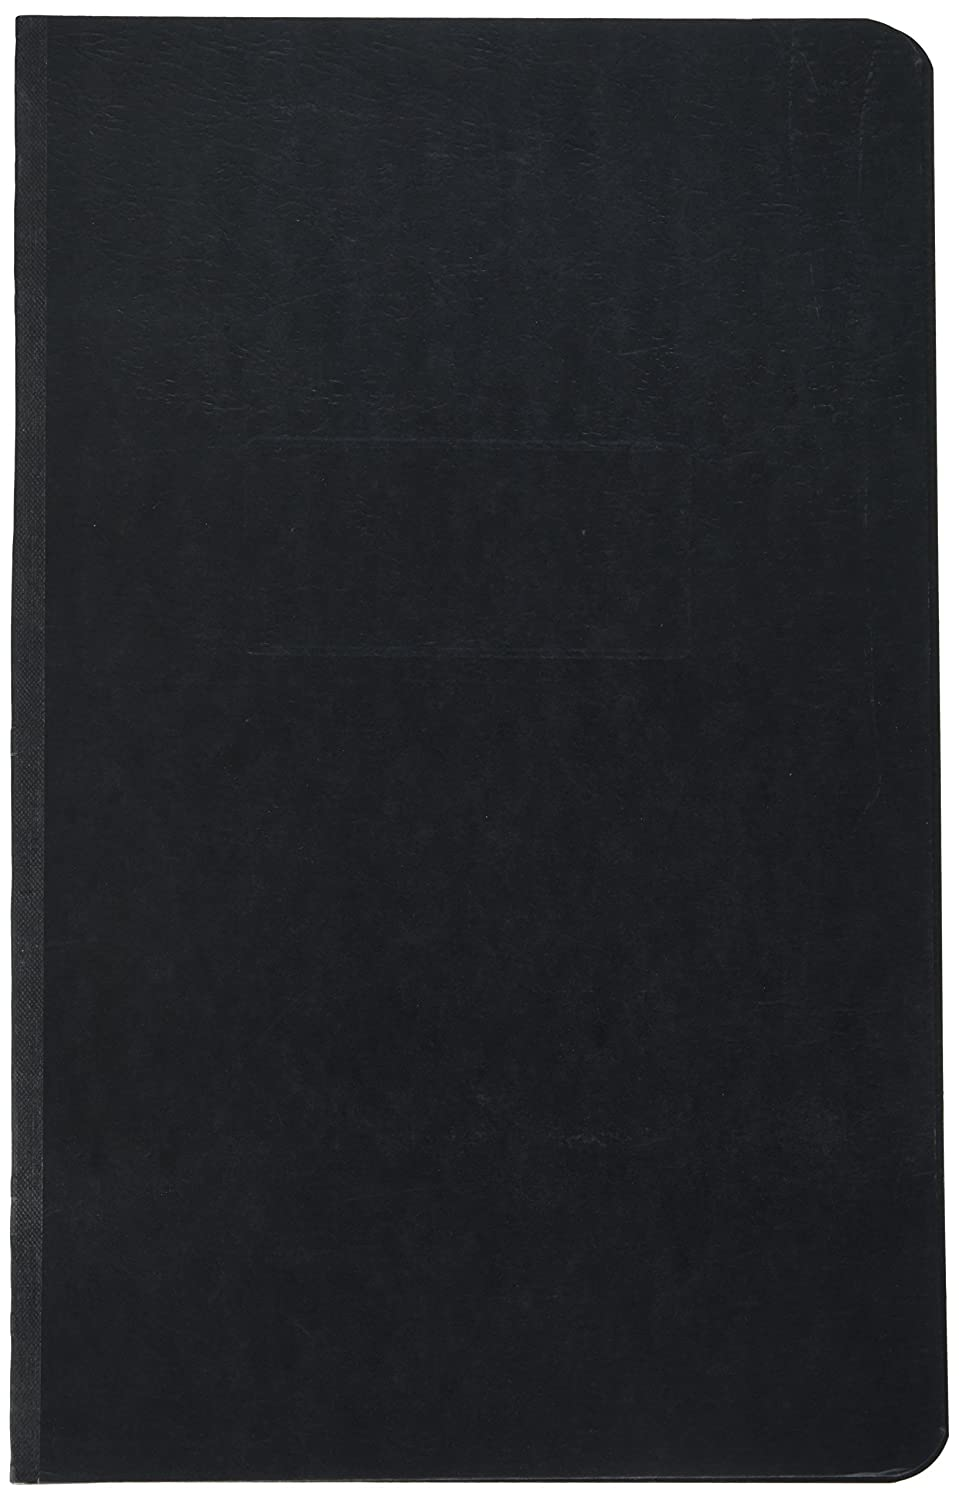 ACCO PRESSTEX Report Cover, Side Bound, Tyvek Reinforced Hinge, 8.5 Inch Centers, 3 Inch Capacity, Legal Size, Black (30071) ACCO Brands Canada Inc.